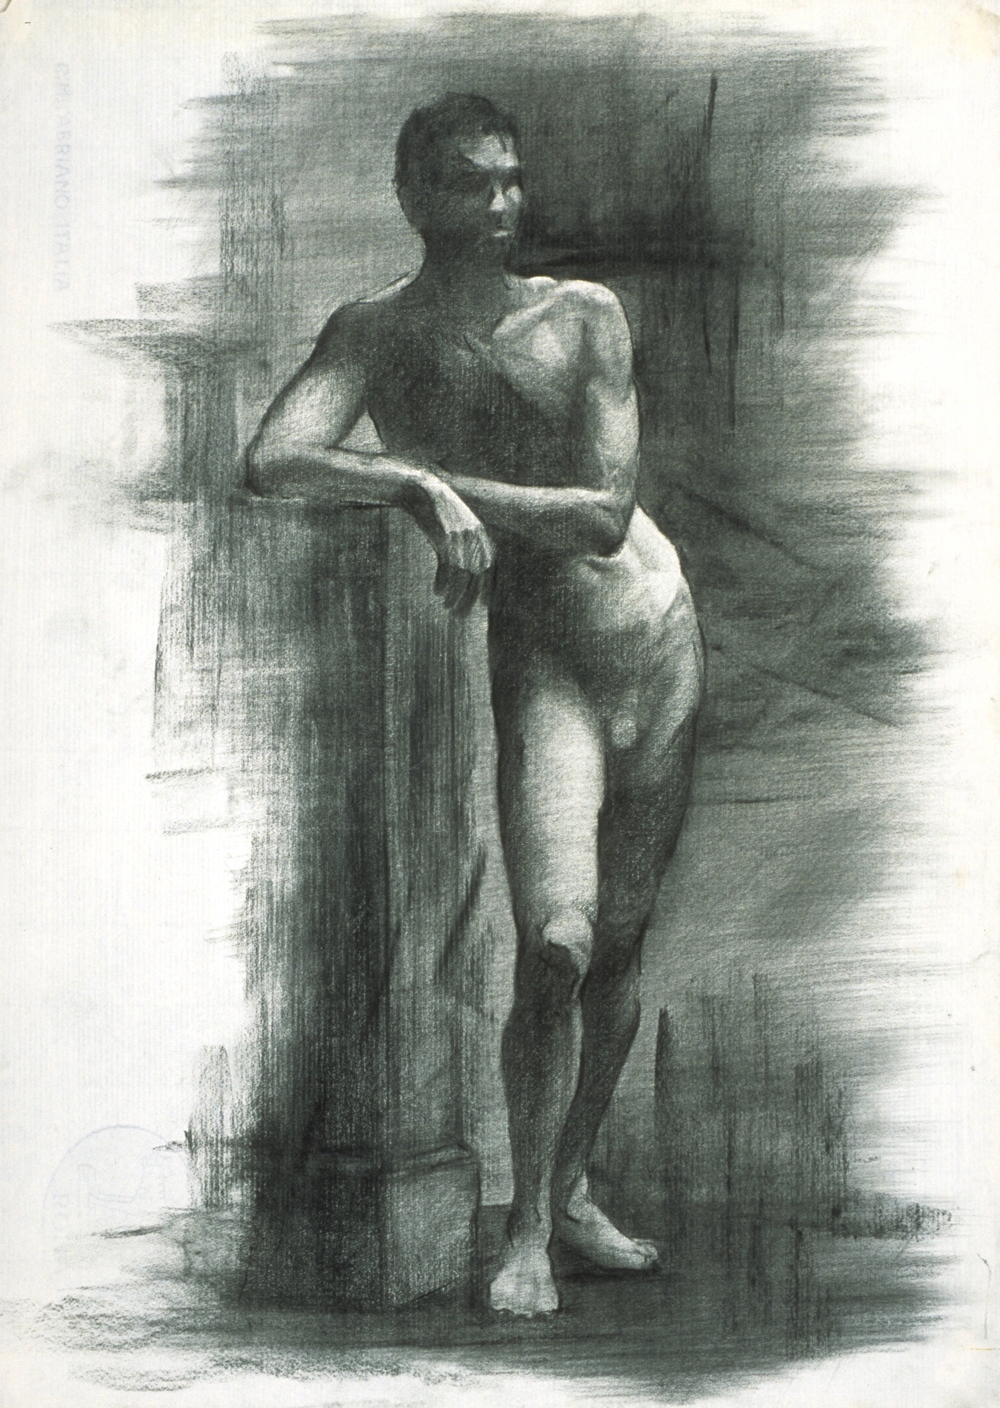 Male Nude, leaning